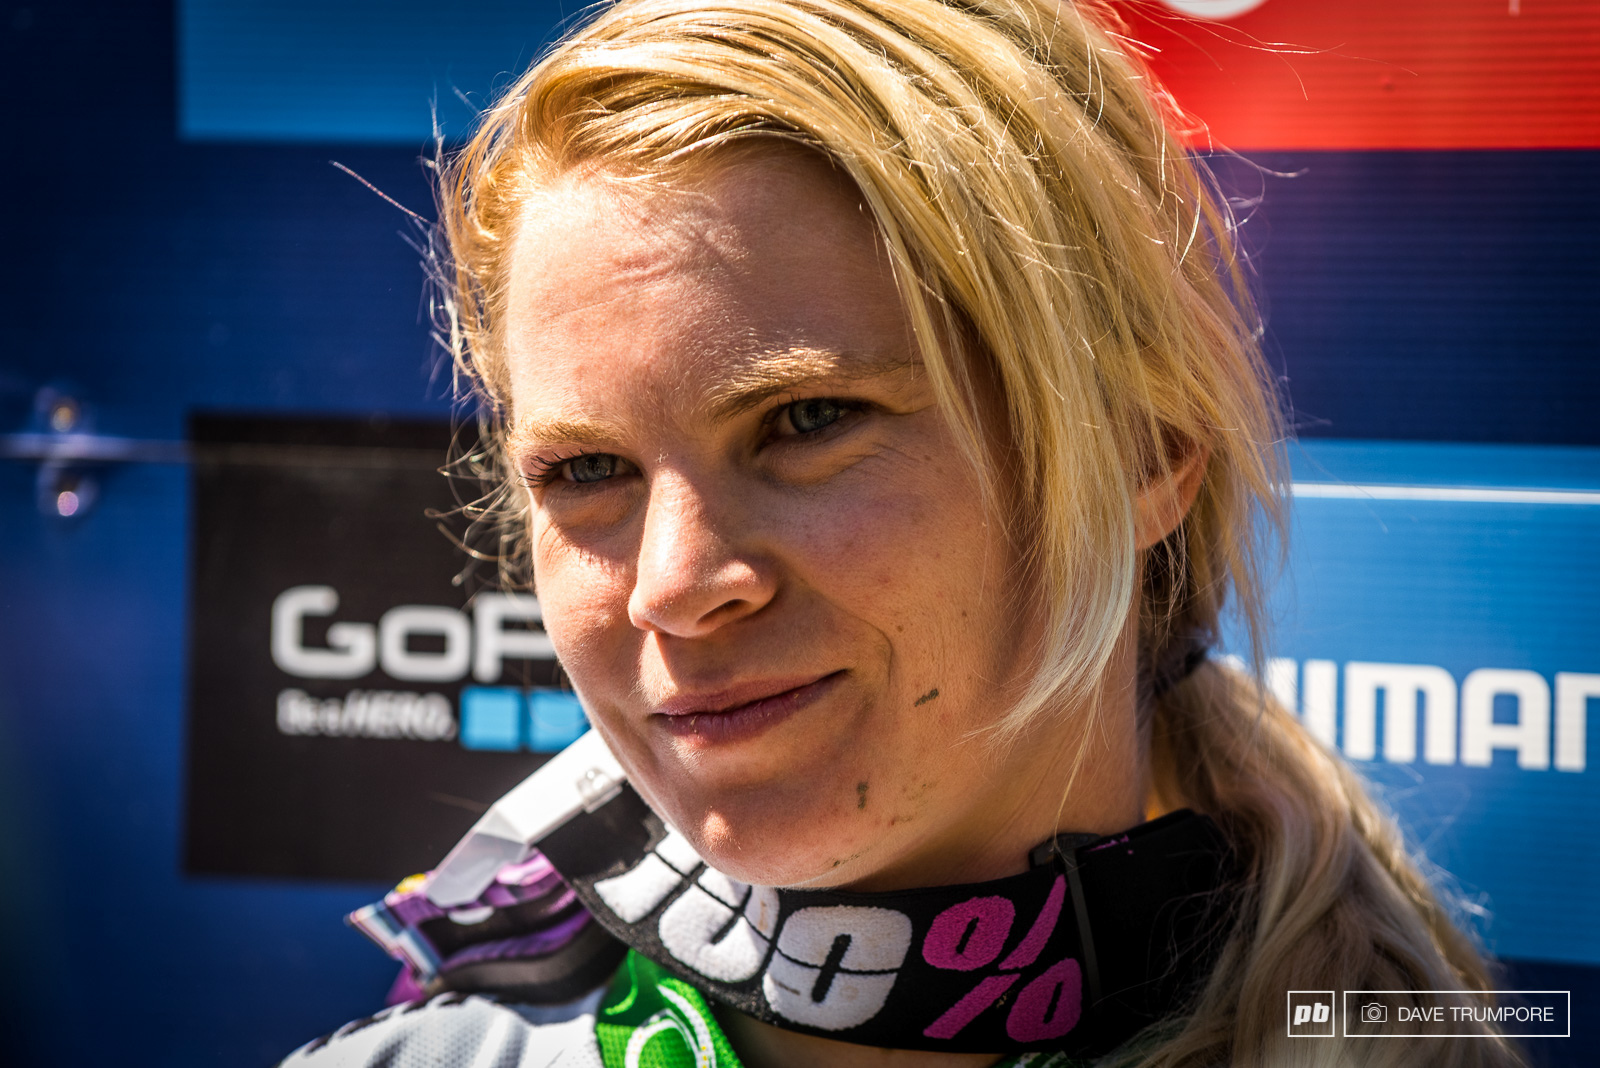 After a season that started so bright but then became complicated by injury Tracy Hannah ended on a high note here in Andorra.